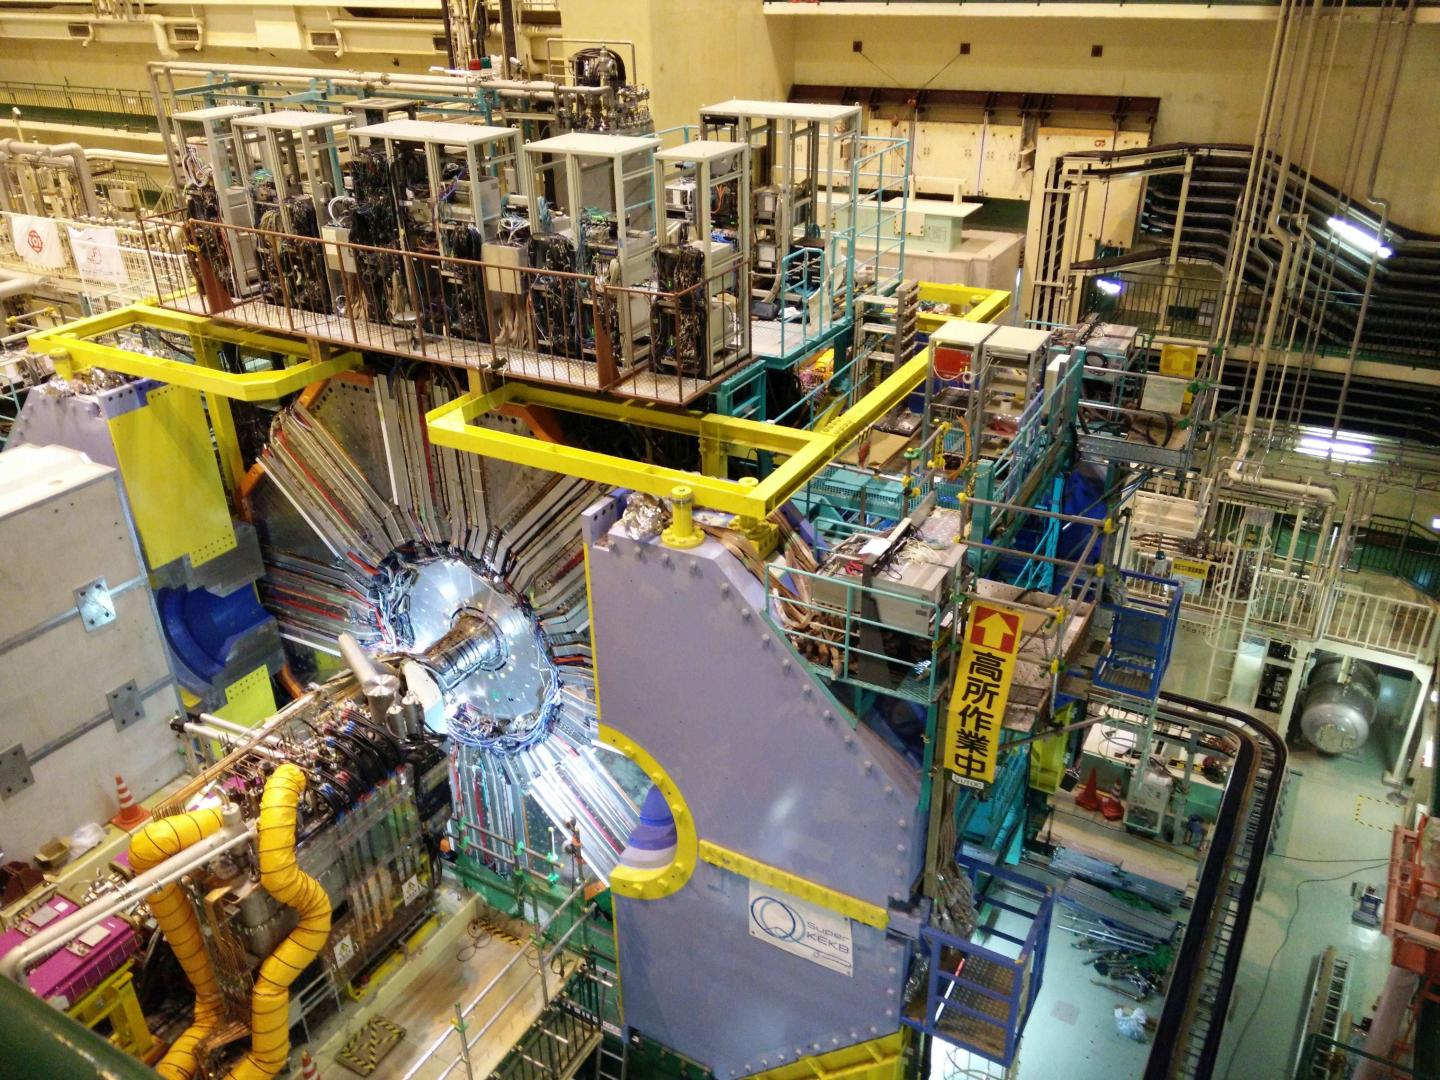 The Belle II Particle Accelerator Experiment Is Searching for the Origins of the Universe